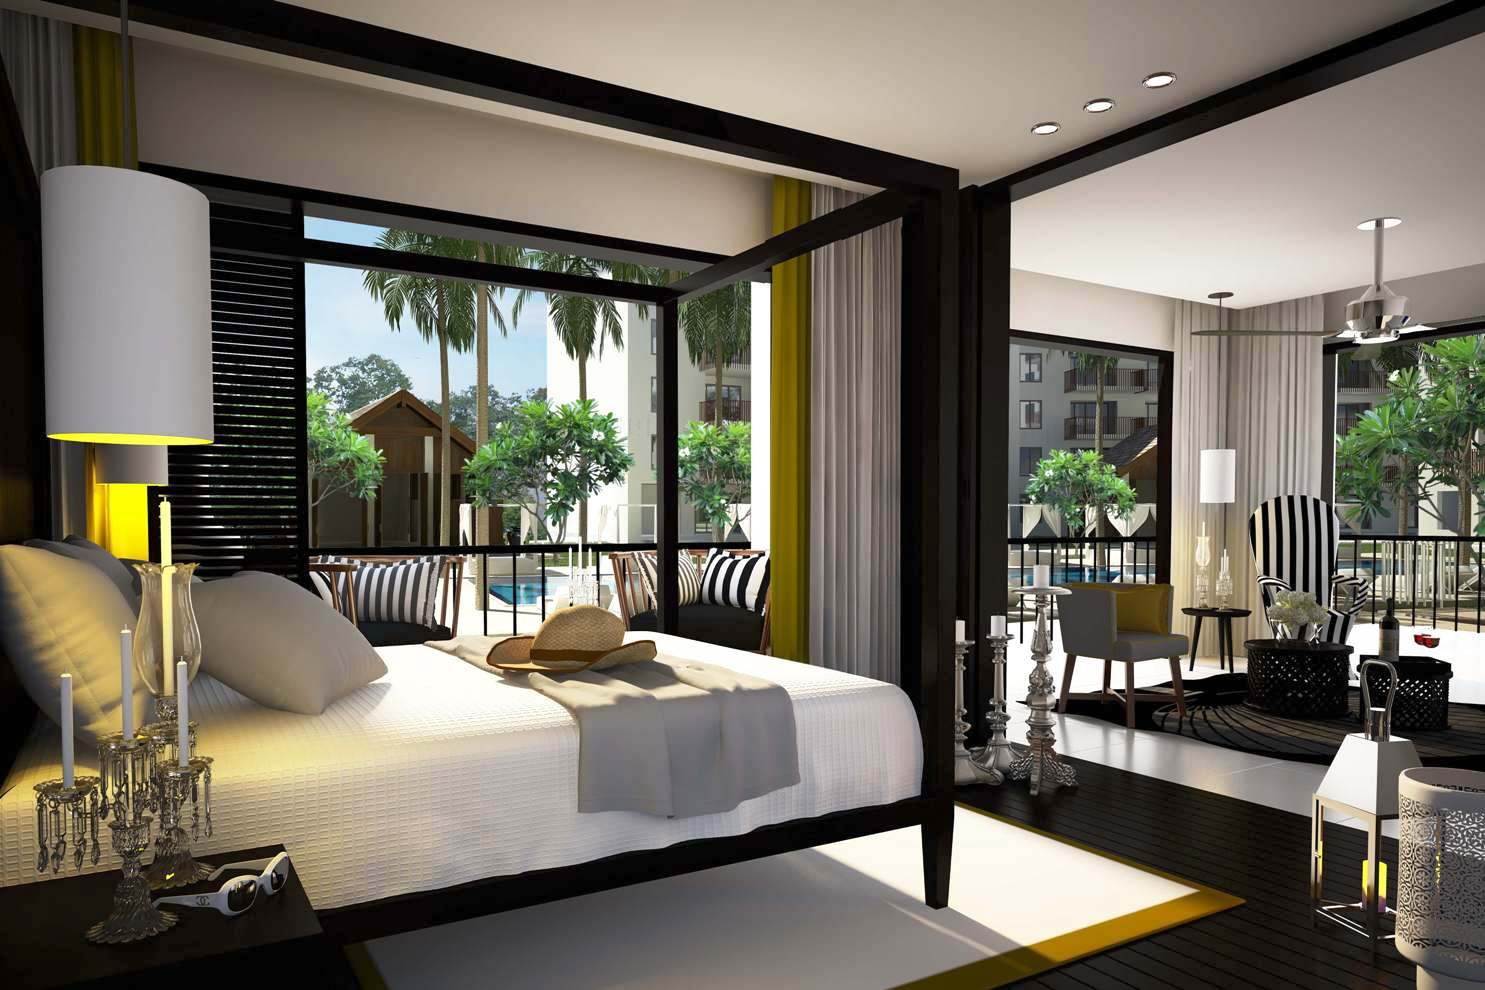 30 romantic master bedroom designs 20626 | modern romantic master bedroom design